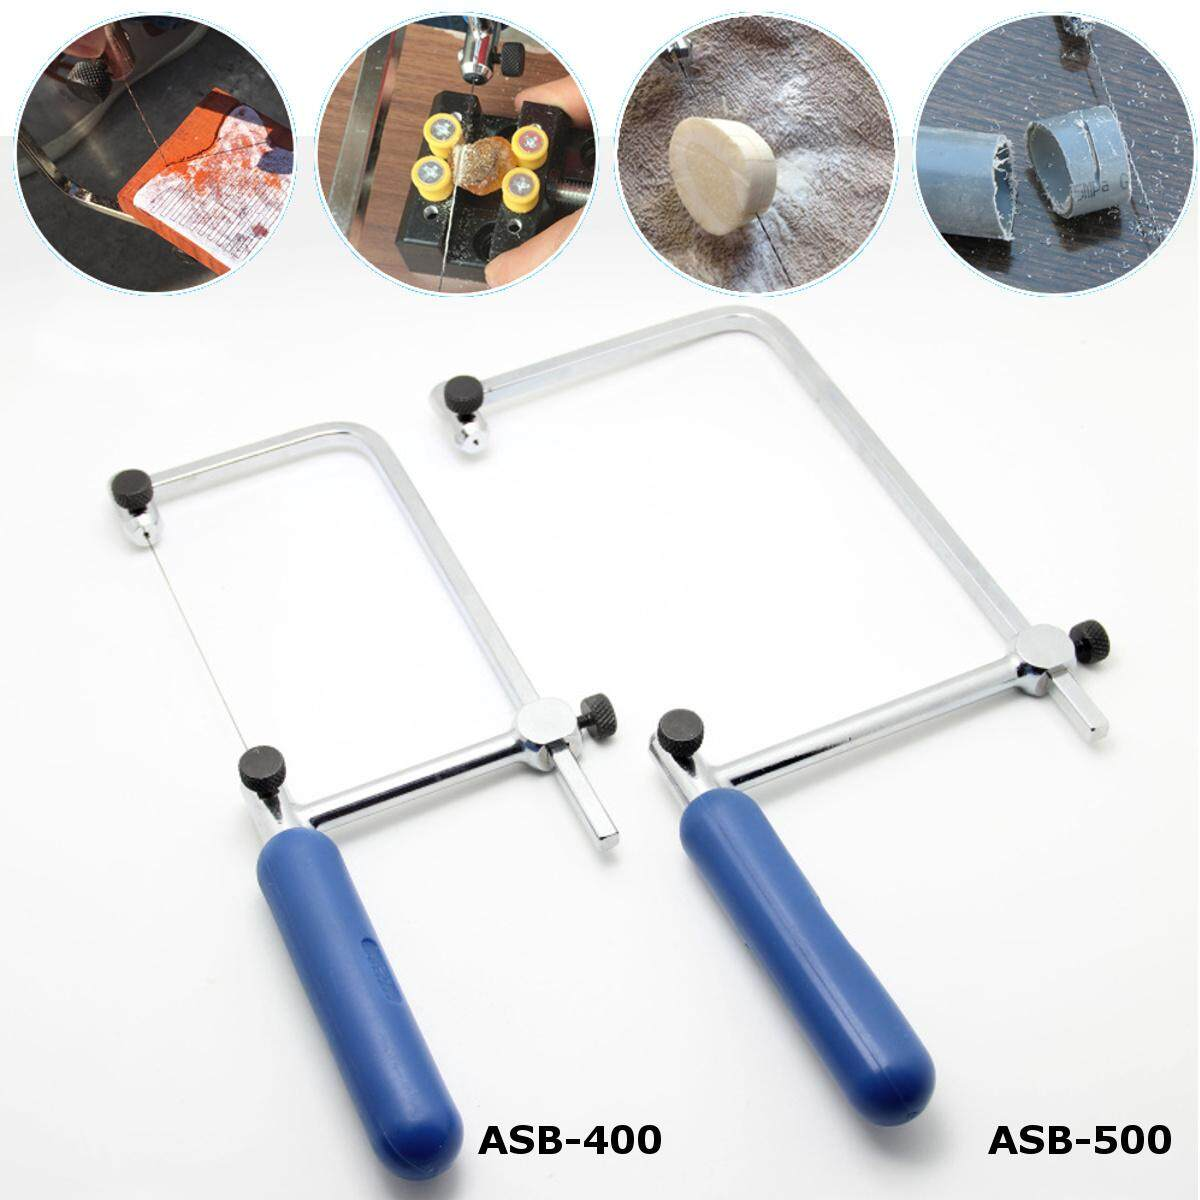 1 Pcs Asb 500 Coping Saw Diamond Wire Saw Frame Jade Metal Wire Saw Blade Cutting Tool By Moonbeam